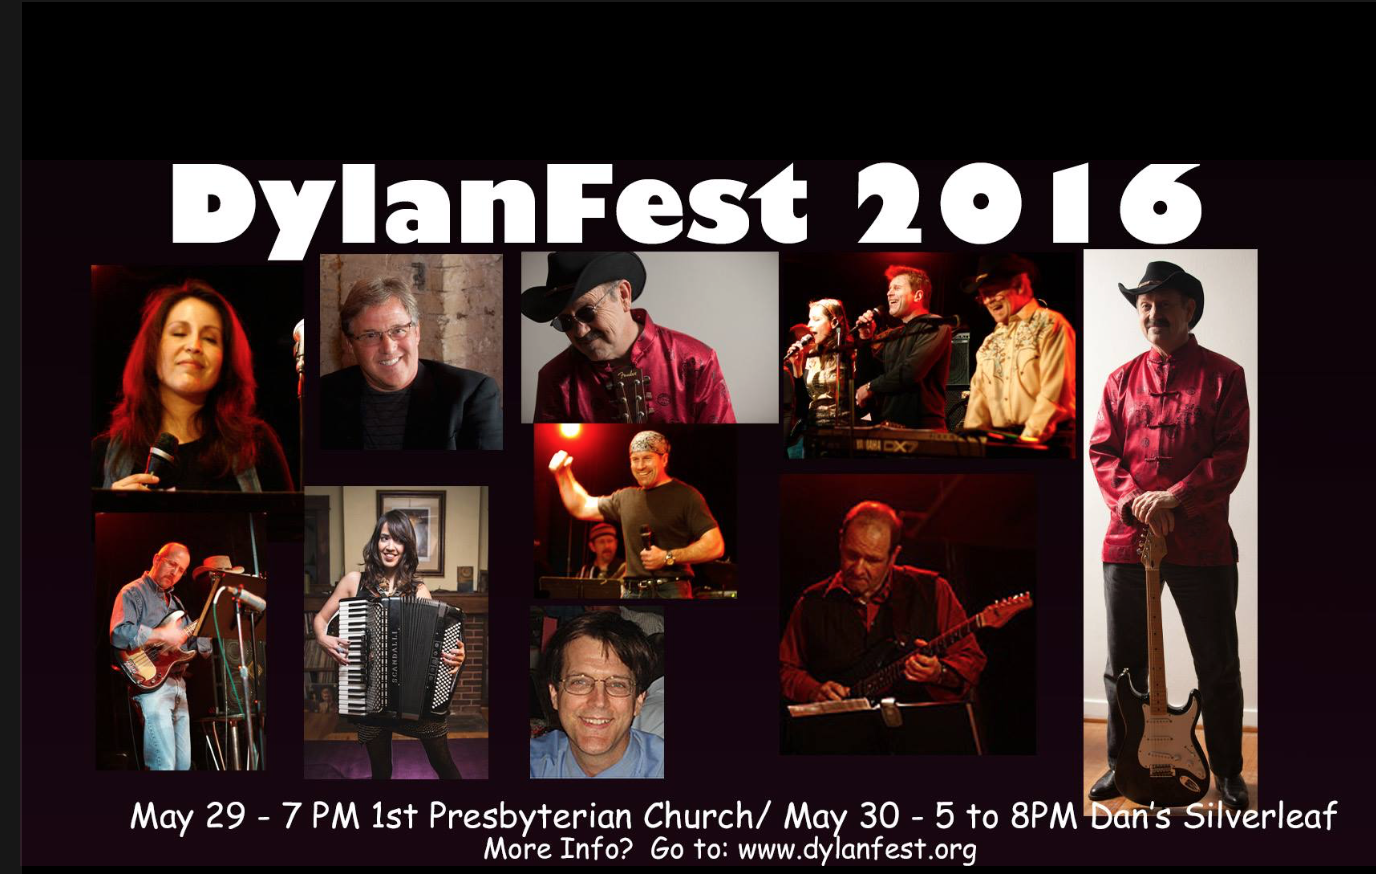 Come join us at Dylanfest this year!  Click on the image above for more details. Proceeds benefit Instruments of Change.  For more information go to: Dylanfest.org.